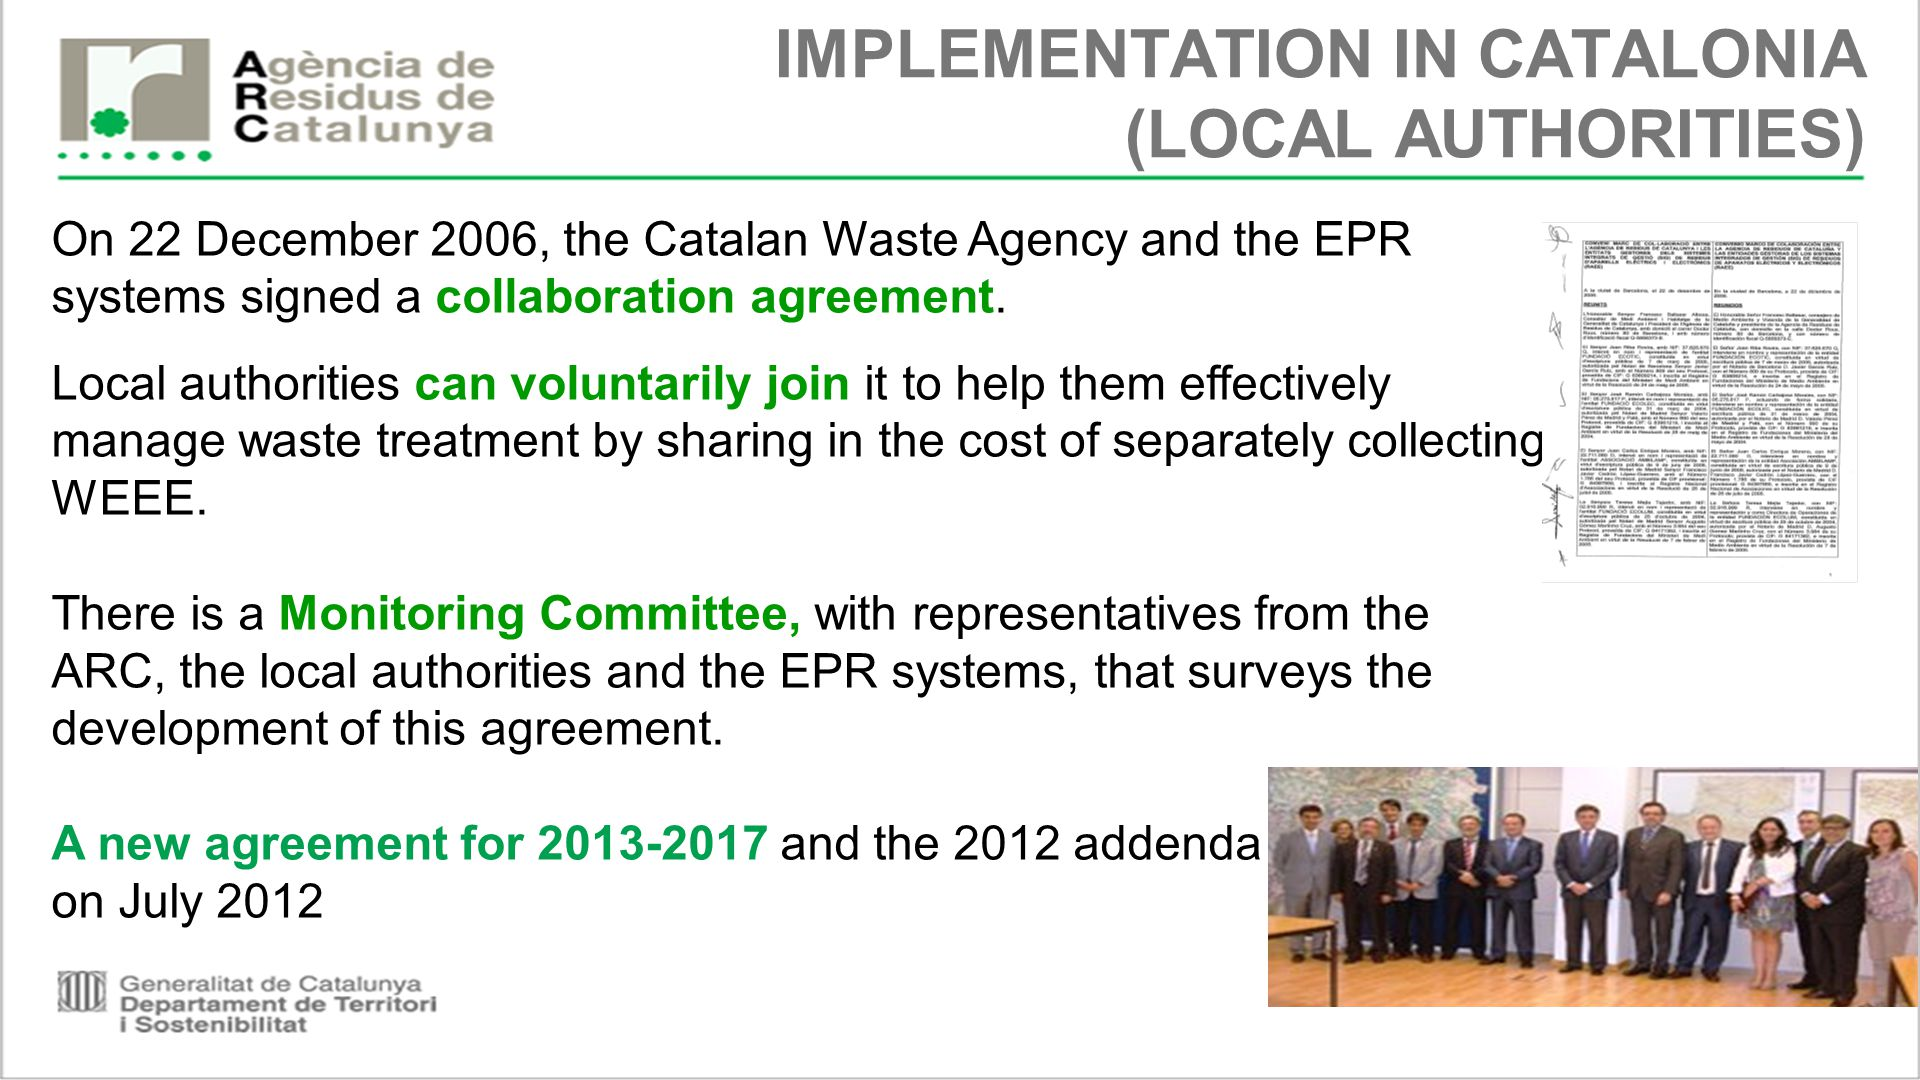 IMPLEMENTATION IN CATALONIA (LOCAL AUTHORITIES) On 22 December 2006, the Catalan Waste Agency and the EPR systems signed a collaboration agreement.